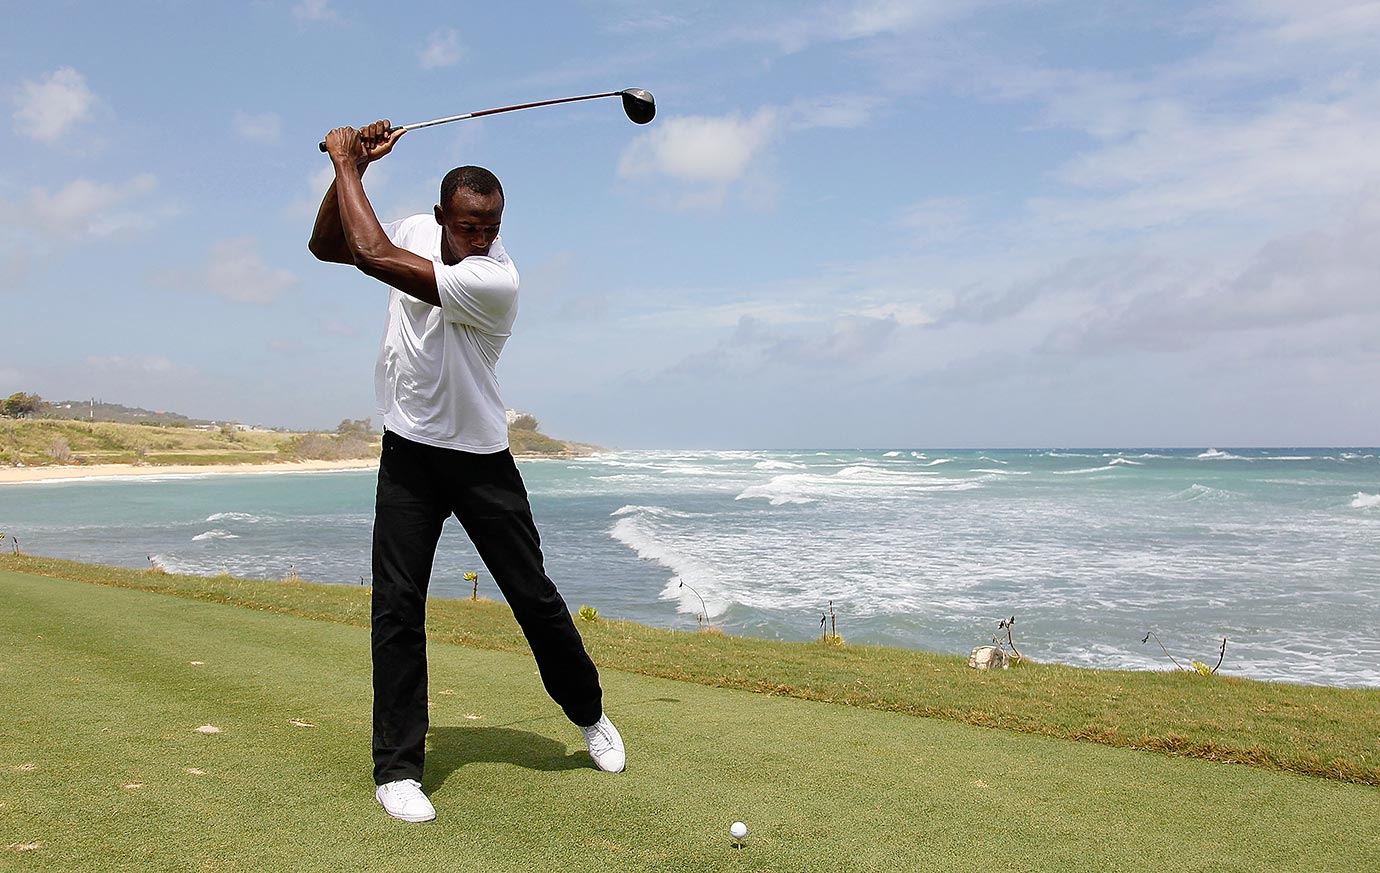 Usain Bolt goofs off by teeing off into the Caribbean Sea during the quarterfinal matches of the 2010 Mojo 6 Jamaica LPGA Invitational in Montego Bay.